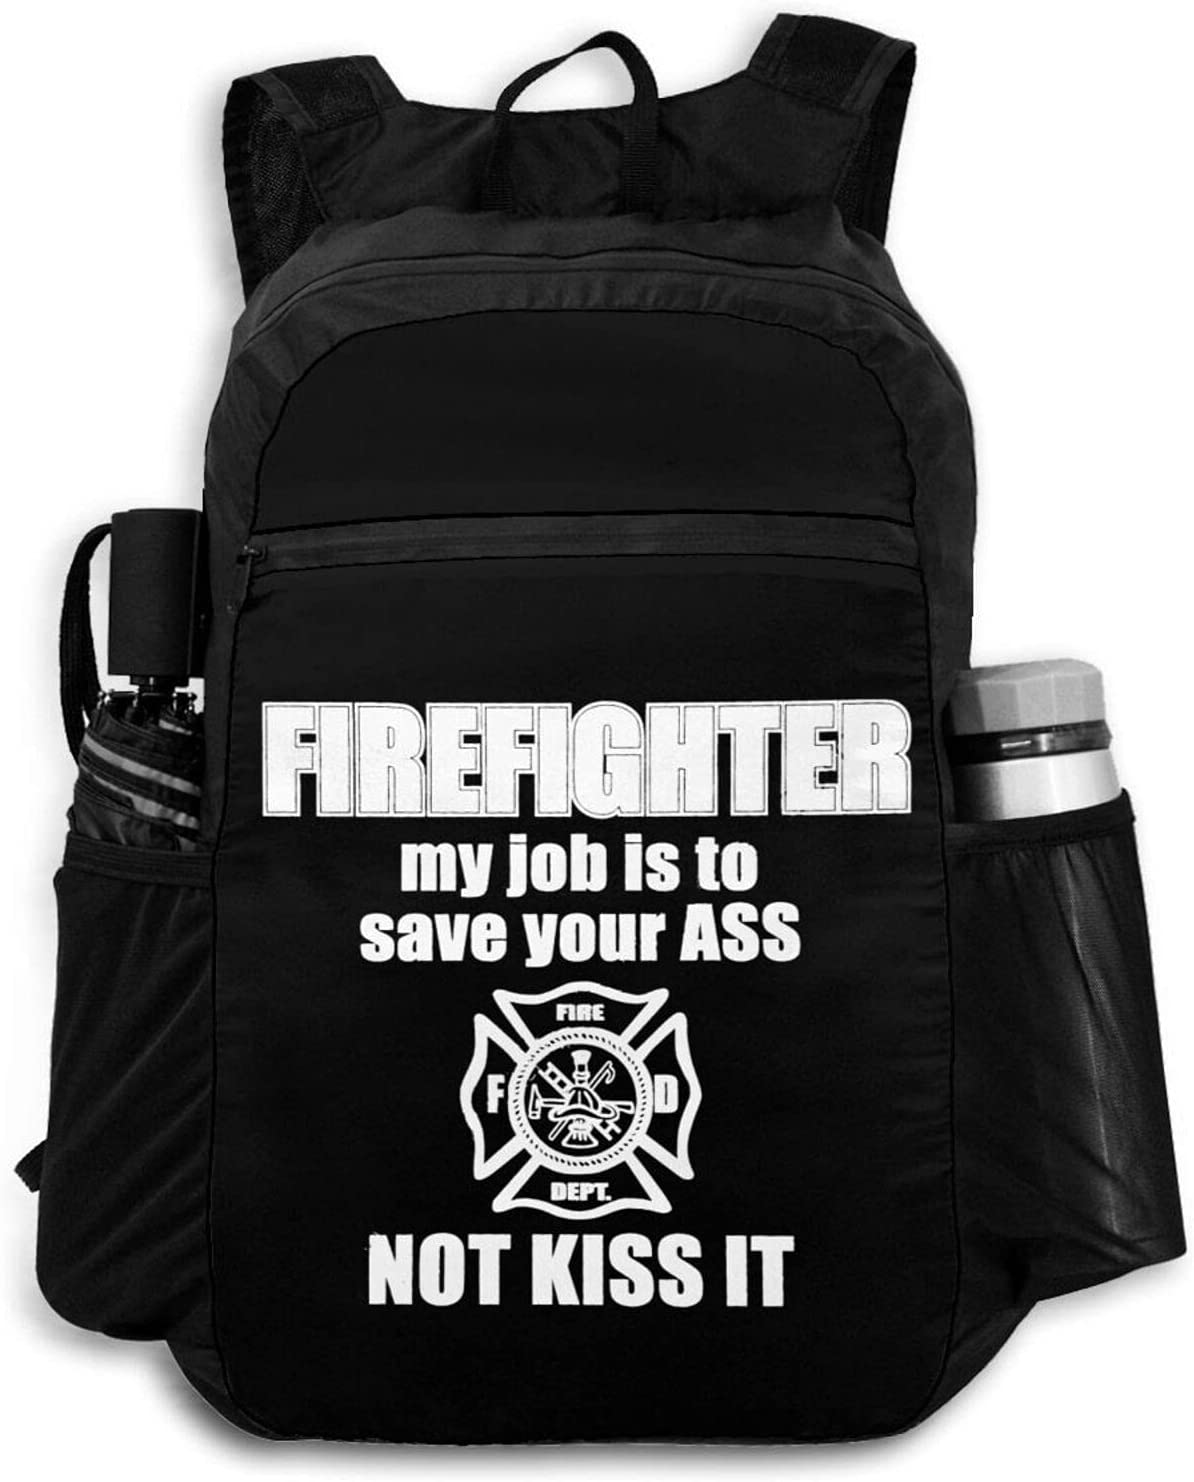 Firefighter My Job is to Save Your New products world's highest quality popular for Men C Ass Backpacks Max 86% OFF Women